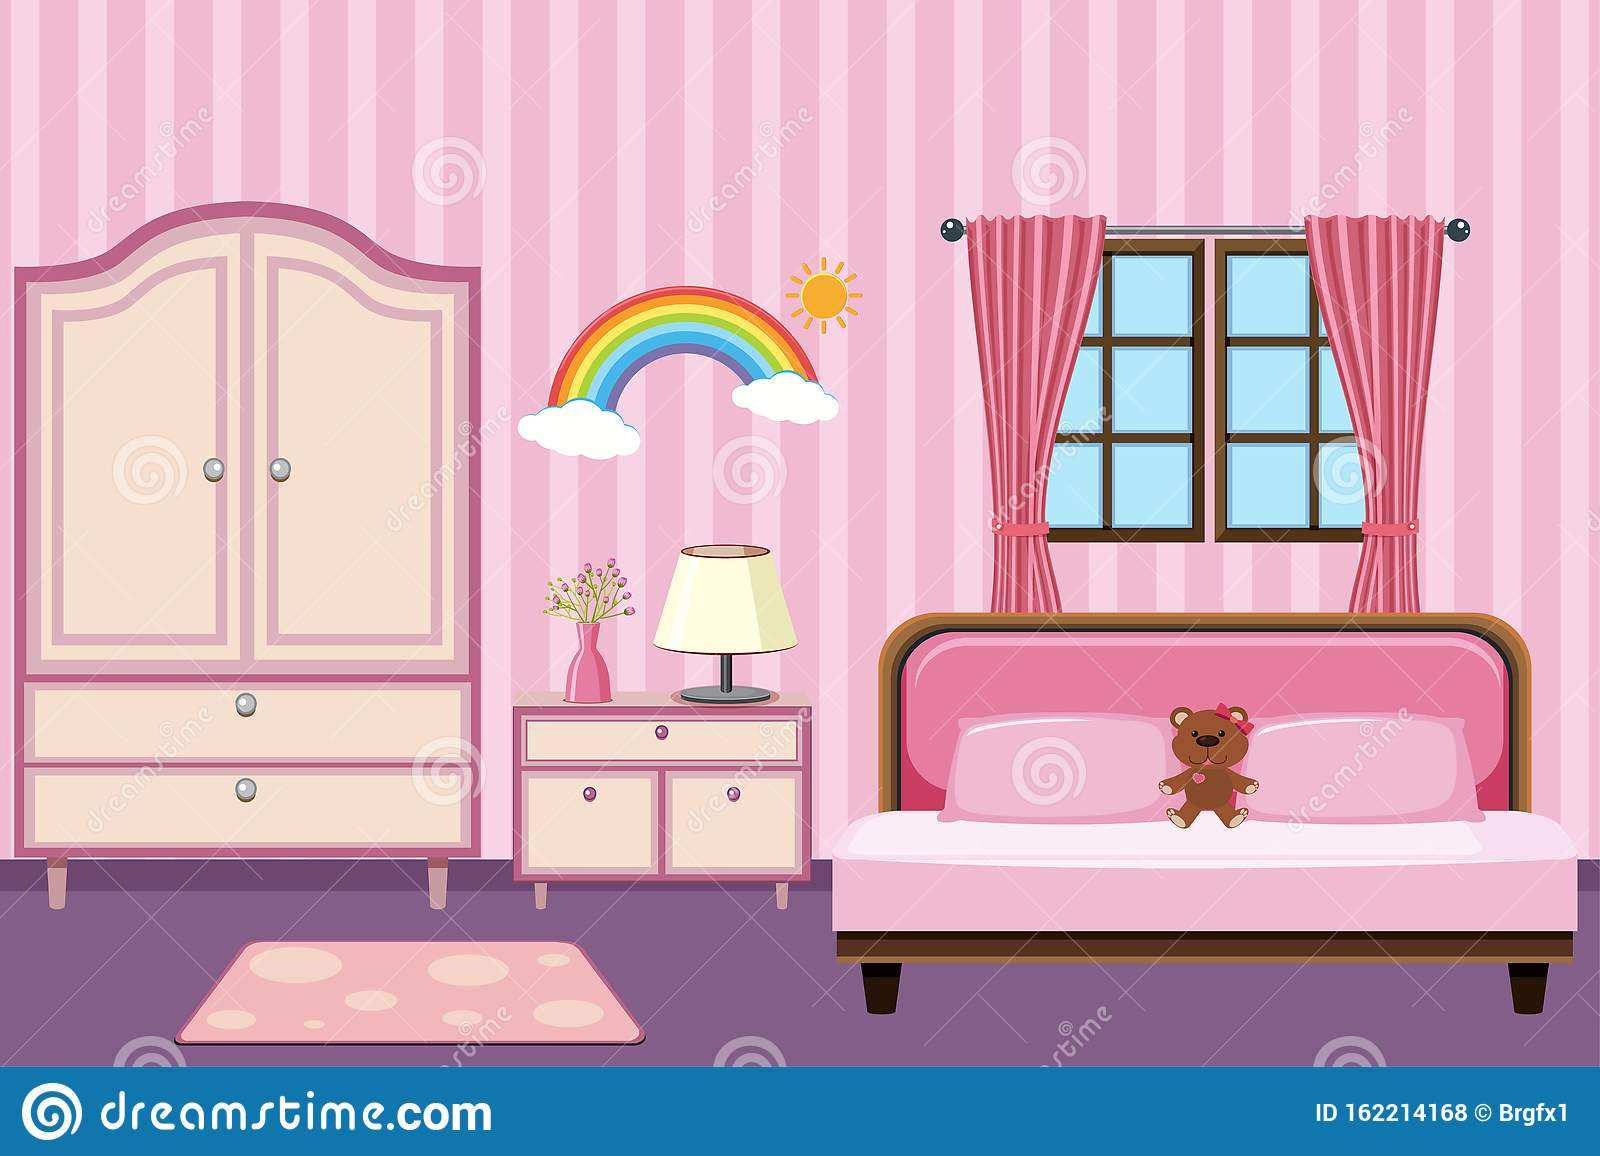 Bedroom With Pink Furniture Stock Vector Illustration Of Drawing Space 162214168